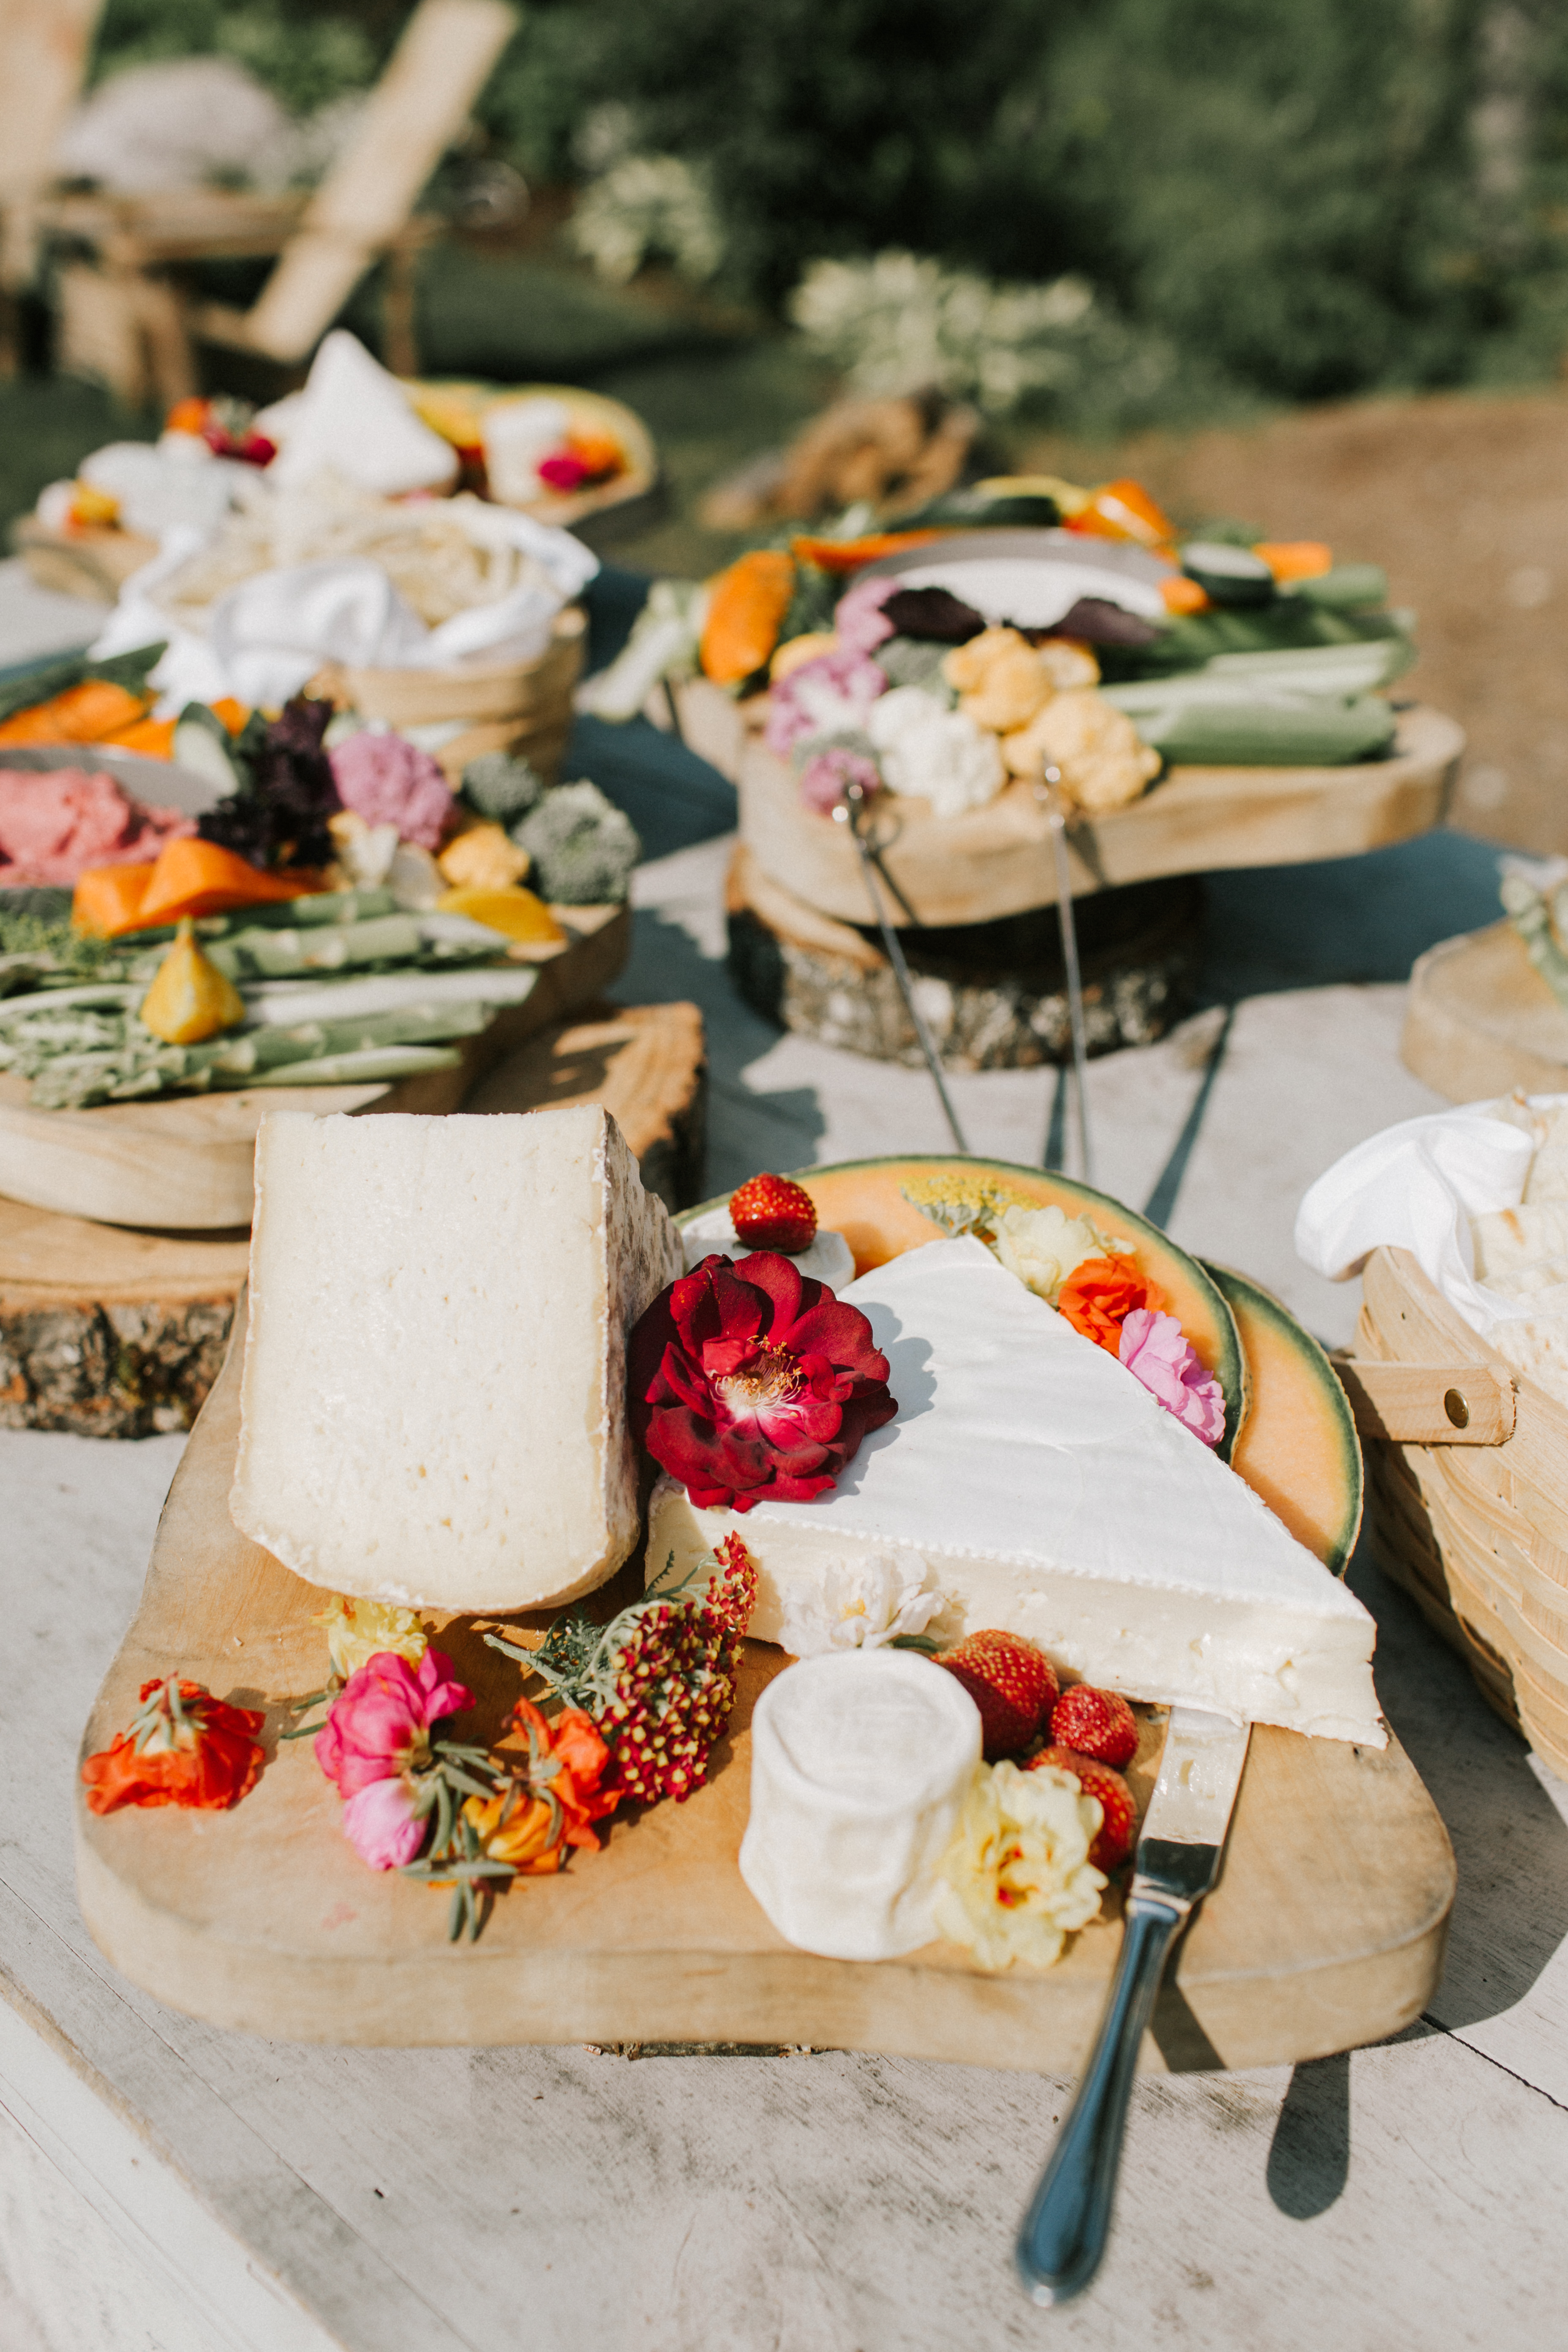 Beautiful appetizers at Hidden Pond wedding in Kennebunkport, Maine